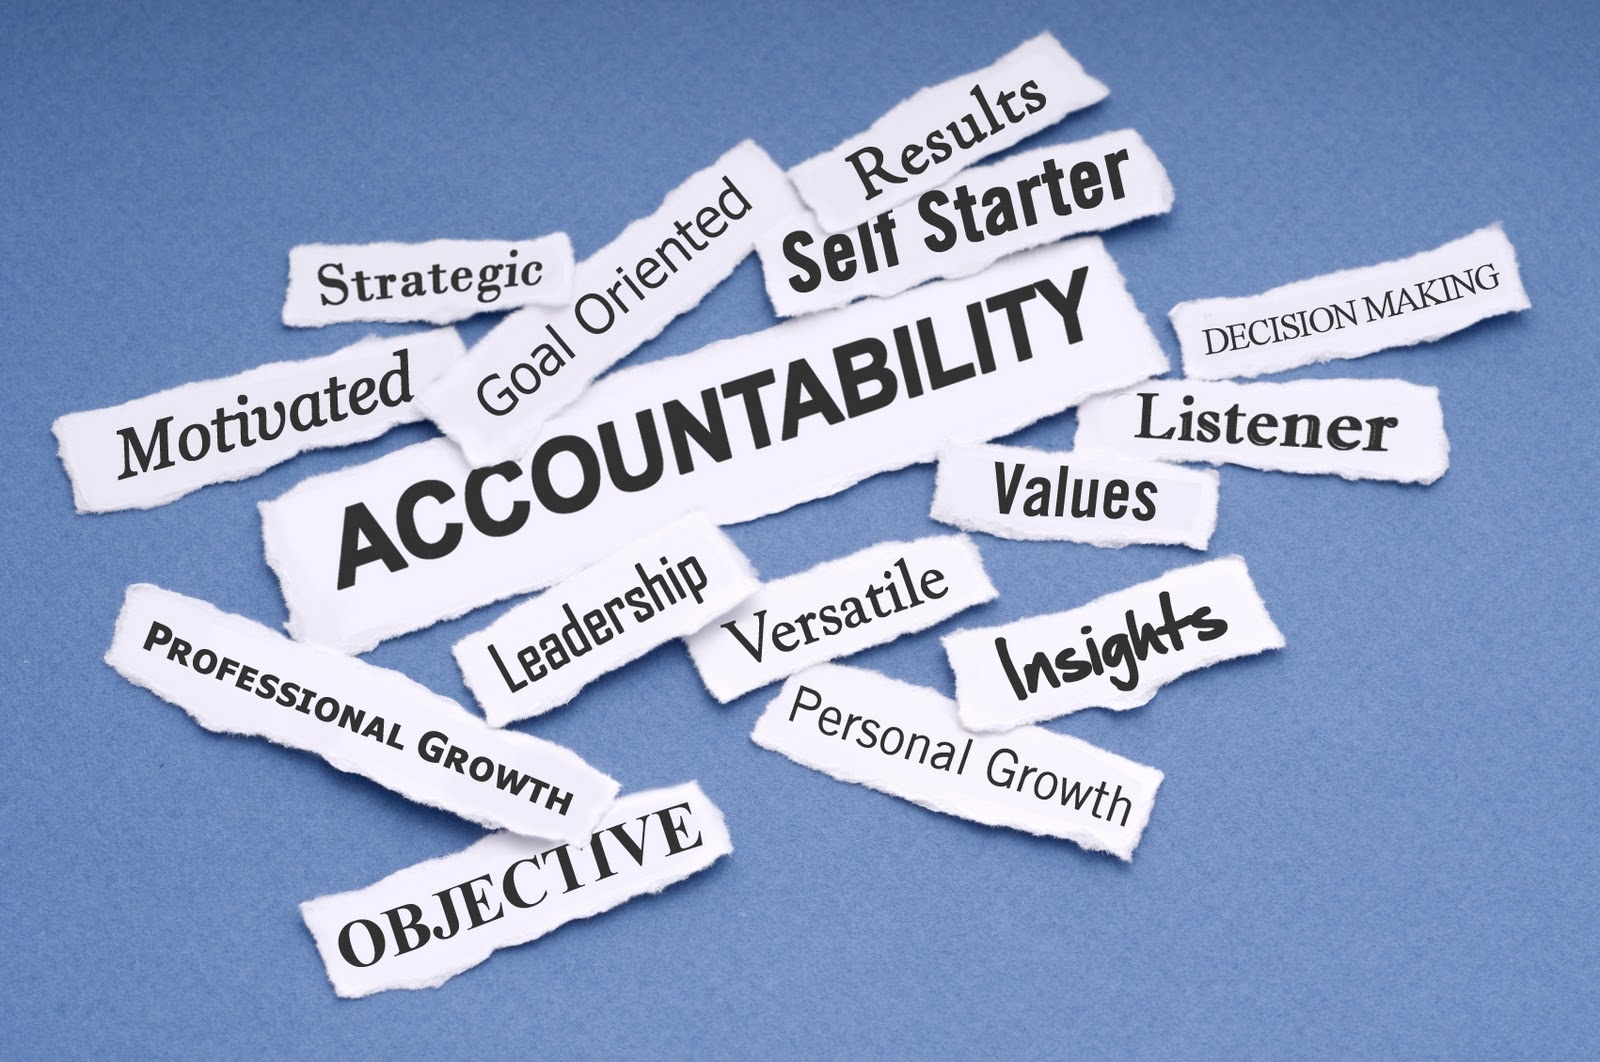 THE ANSWER IS ACCOUNTABILITY